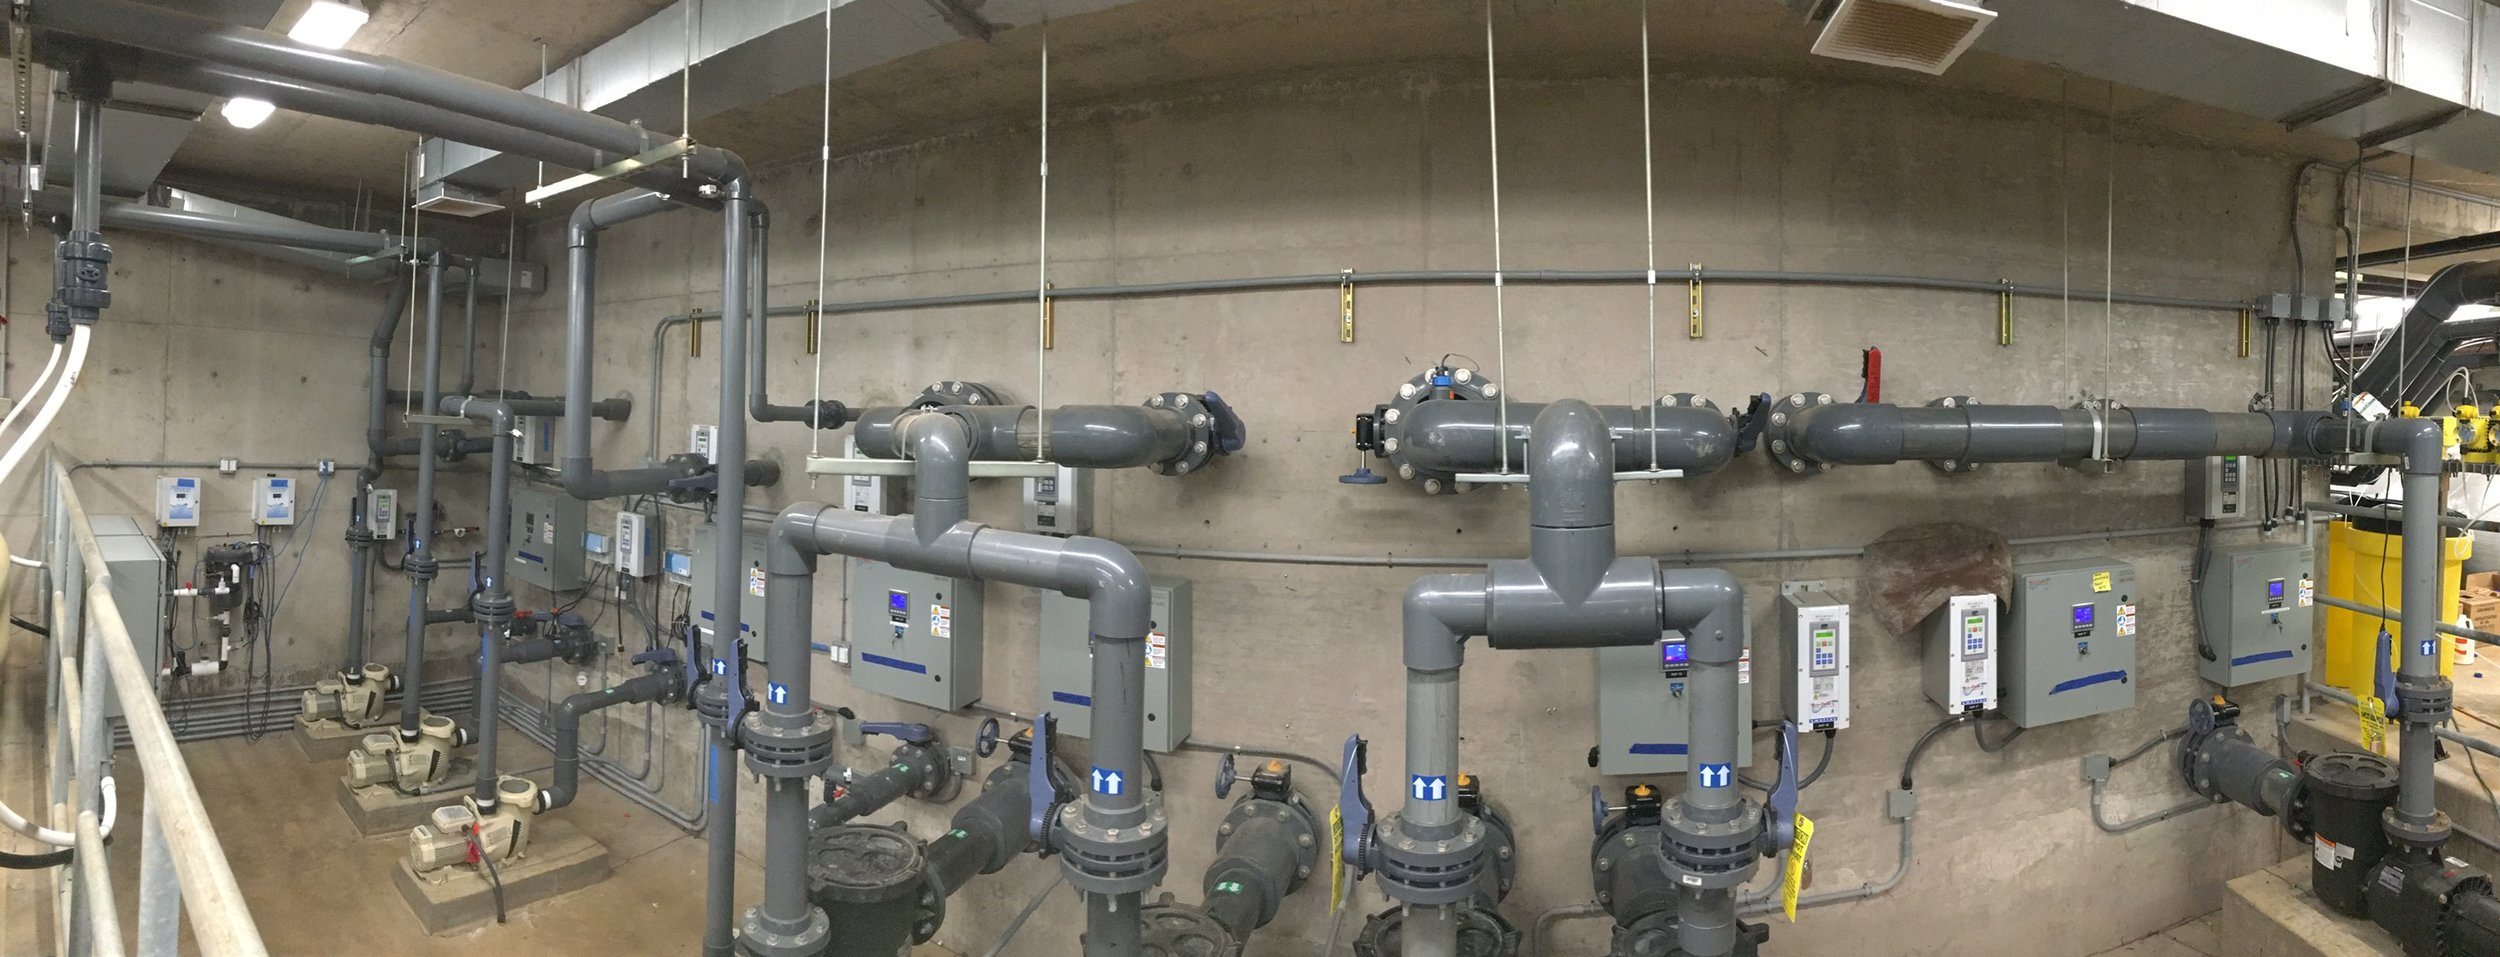 The pool equipment room with Eco-Flow-C® installations at Koloa Landing Resort.